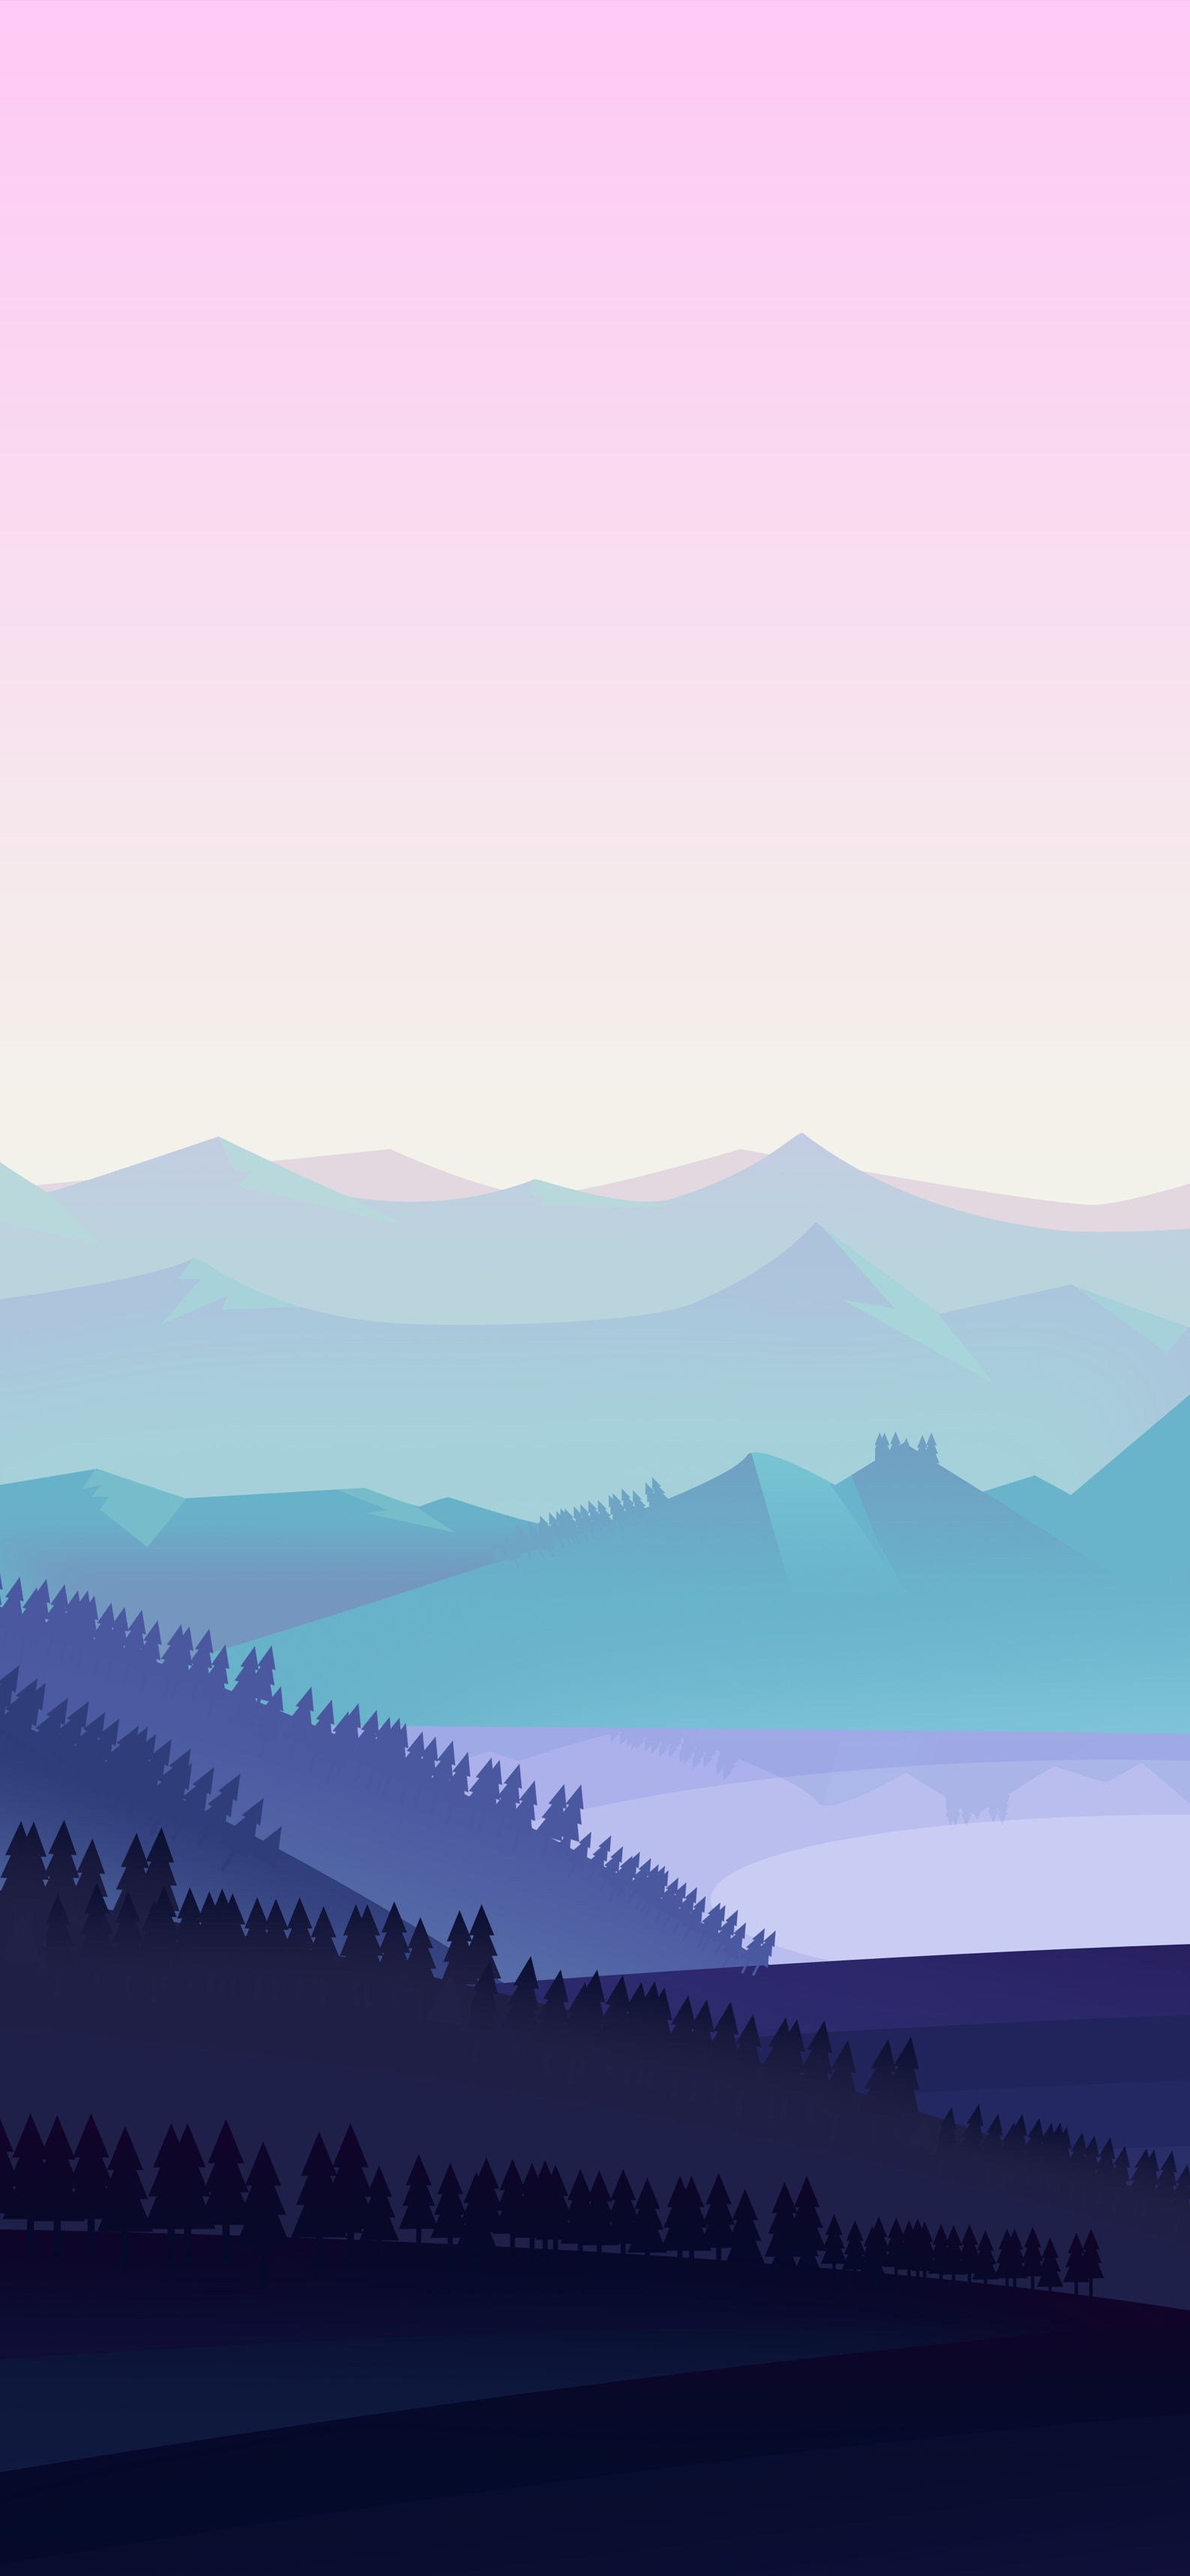 Iphone Landscape Wallpapers On Wallpaperdog